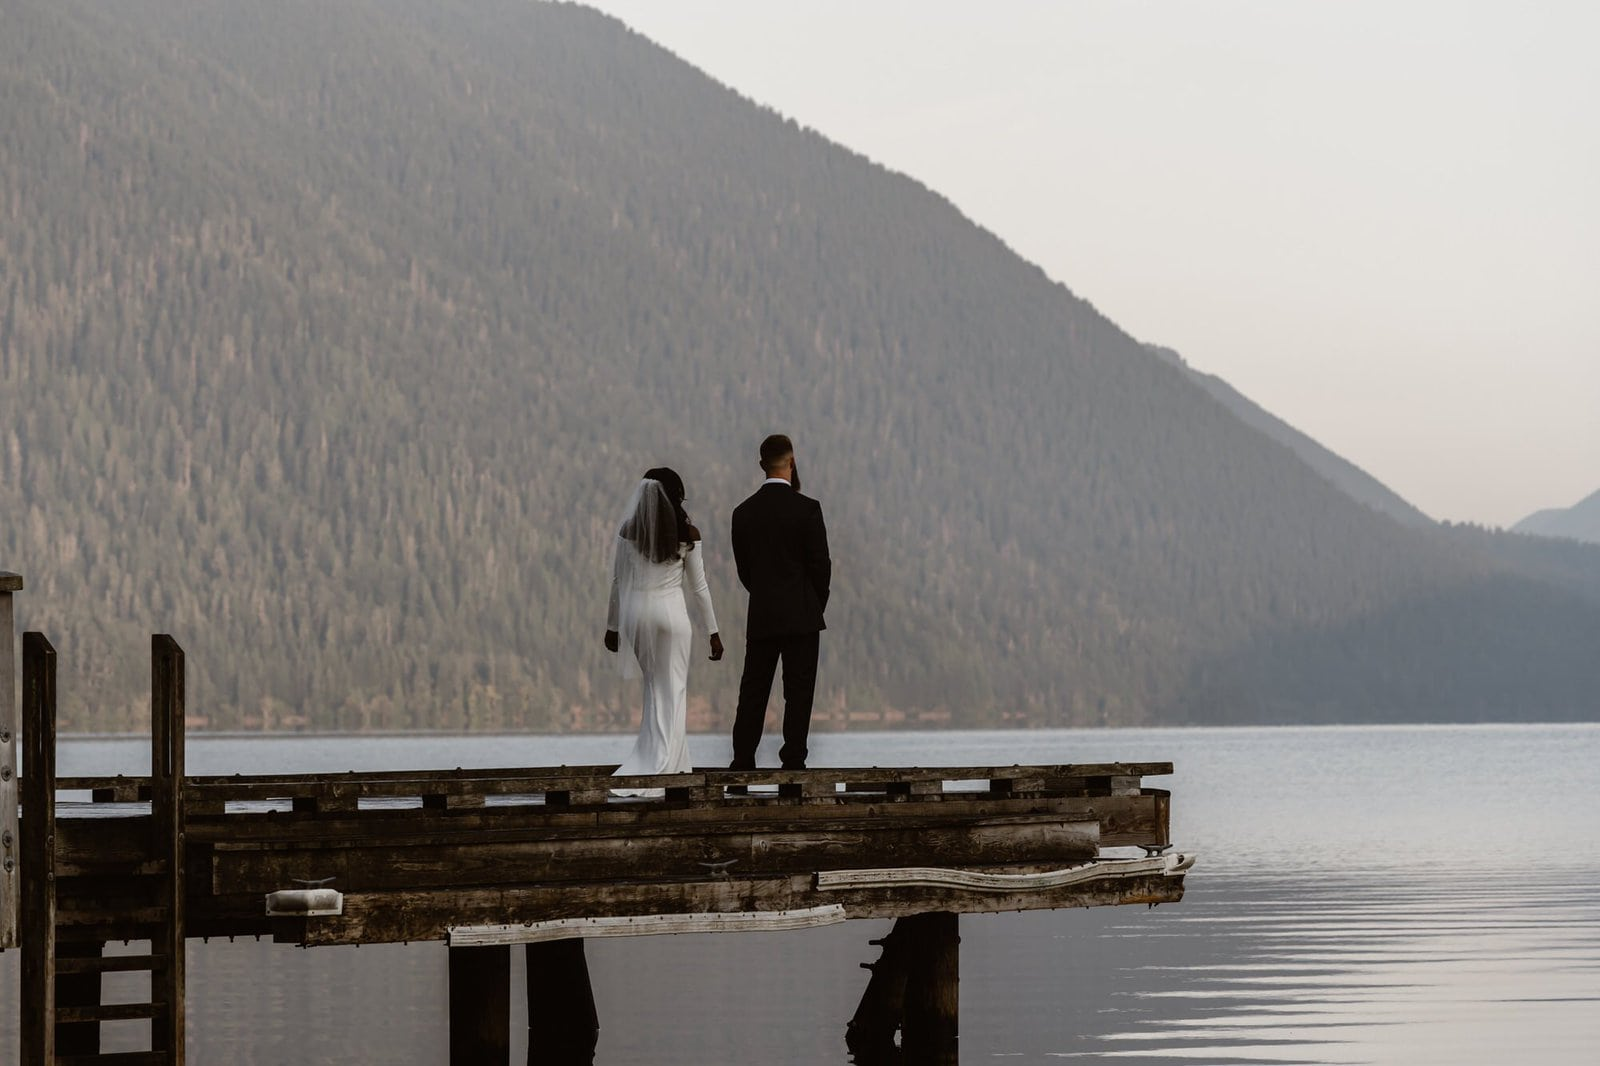 First look at Lake Crescent in Washington.